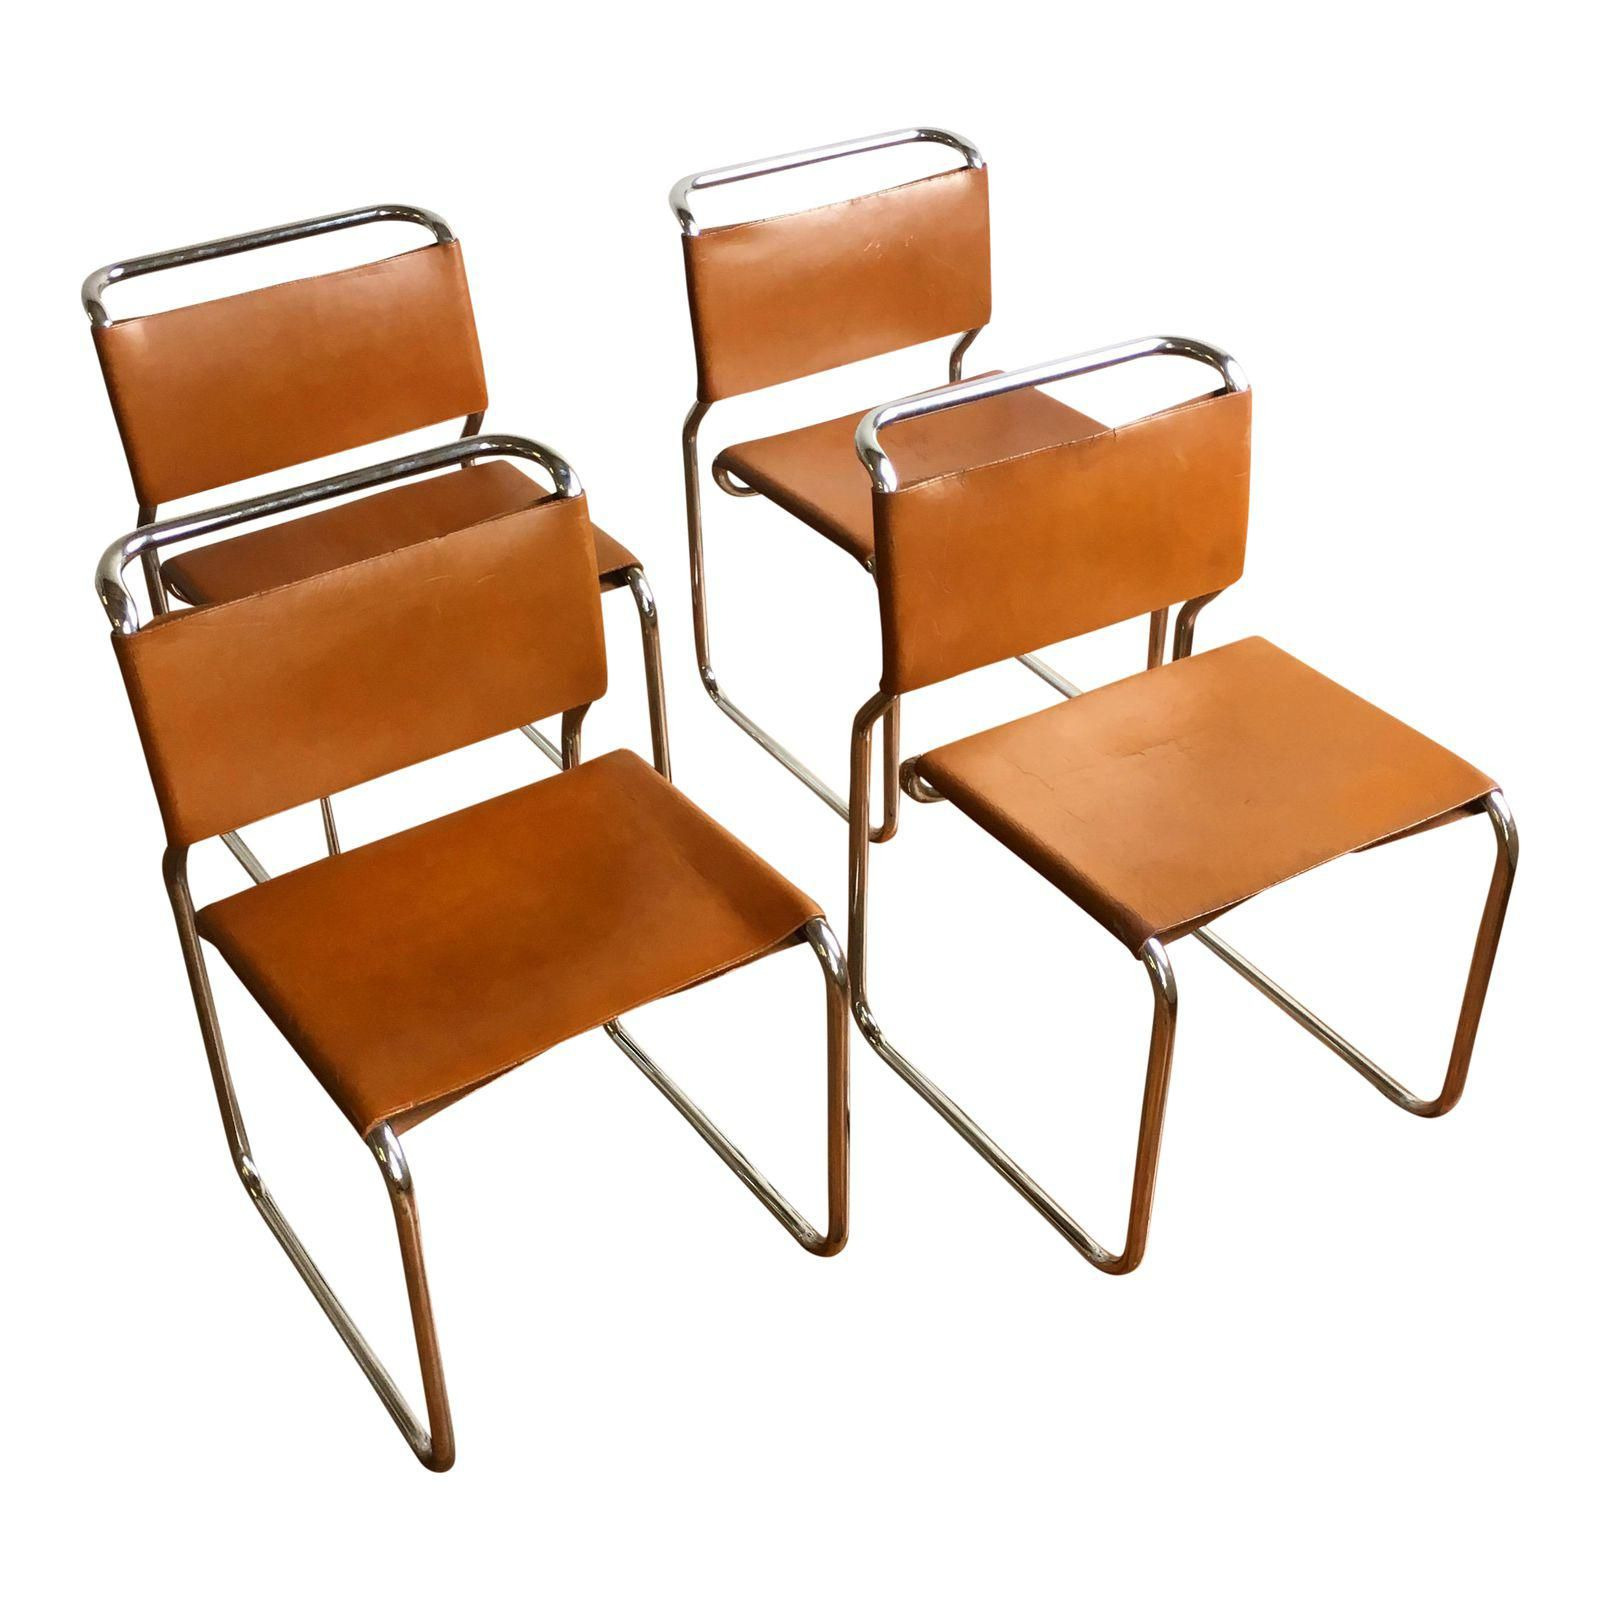 Vintage Oiled Leather Chrome Cantilever Chairs By Nicos Zographos Set Of 4 Image 1 Of 9 Chair Dining Chairs Cantilever Chair